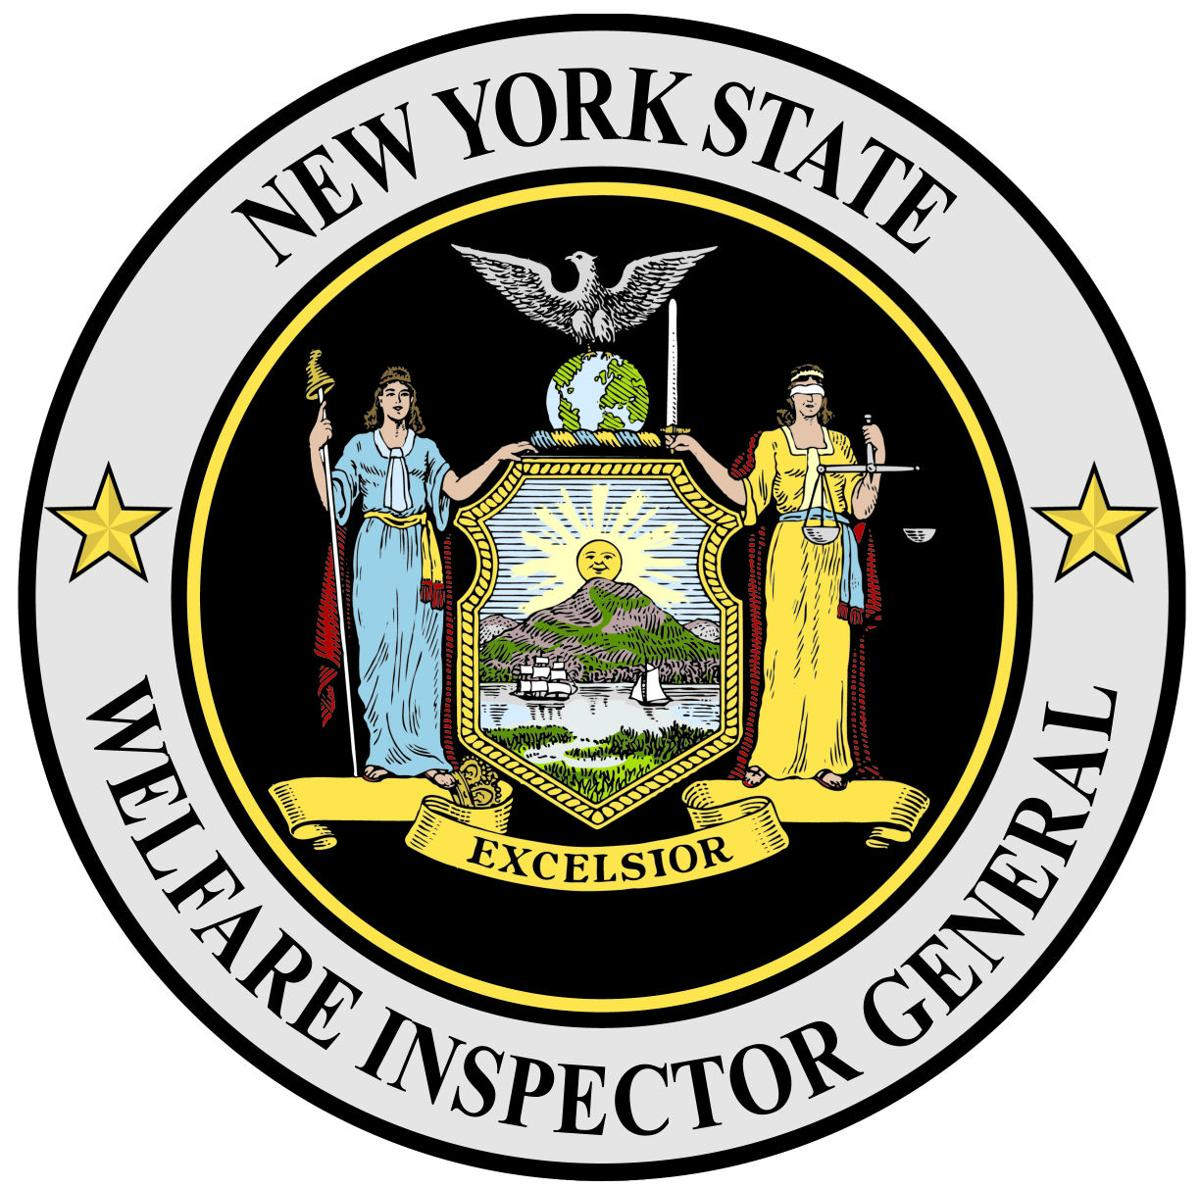 INSPECTOR GENERAL TAGLIAFIERRO ANNOUNCES ARRESTS IN RAMAPO OF TWO INDIVIDUALS WHO SEPARATELY STOLE MORE THAN A TOTAL OF $20,500 IN WORKERS' COMPENSATION BENEFITS